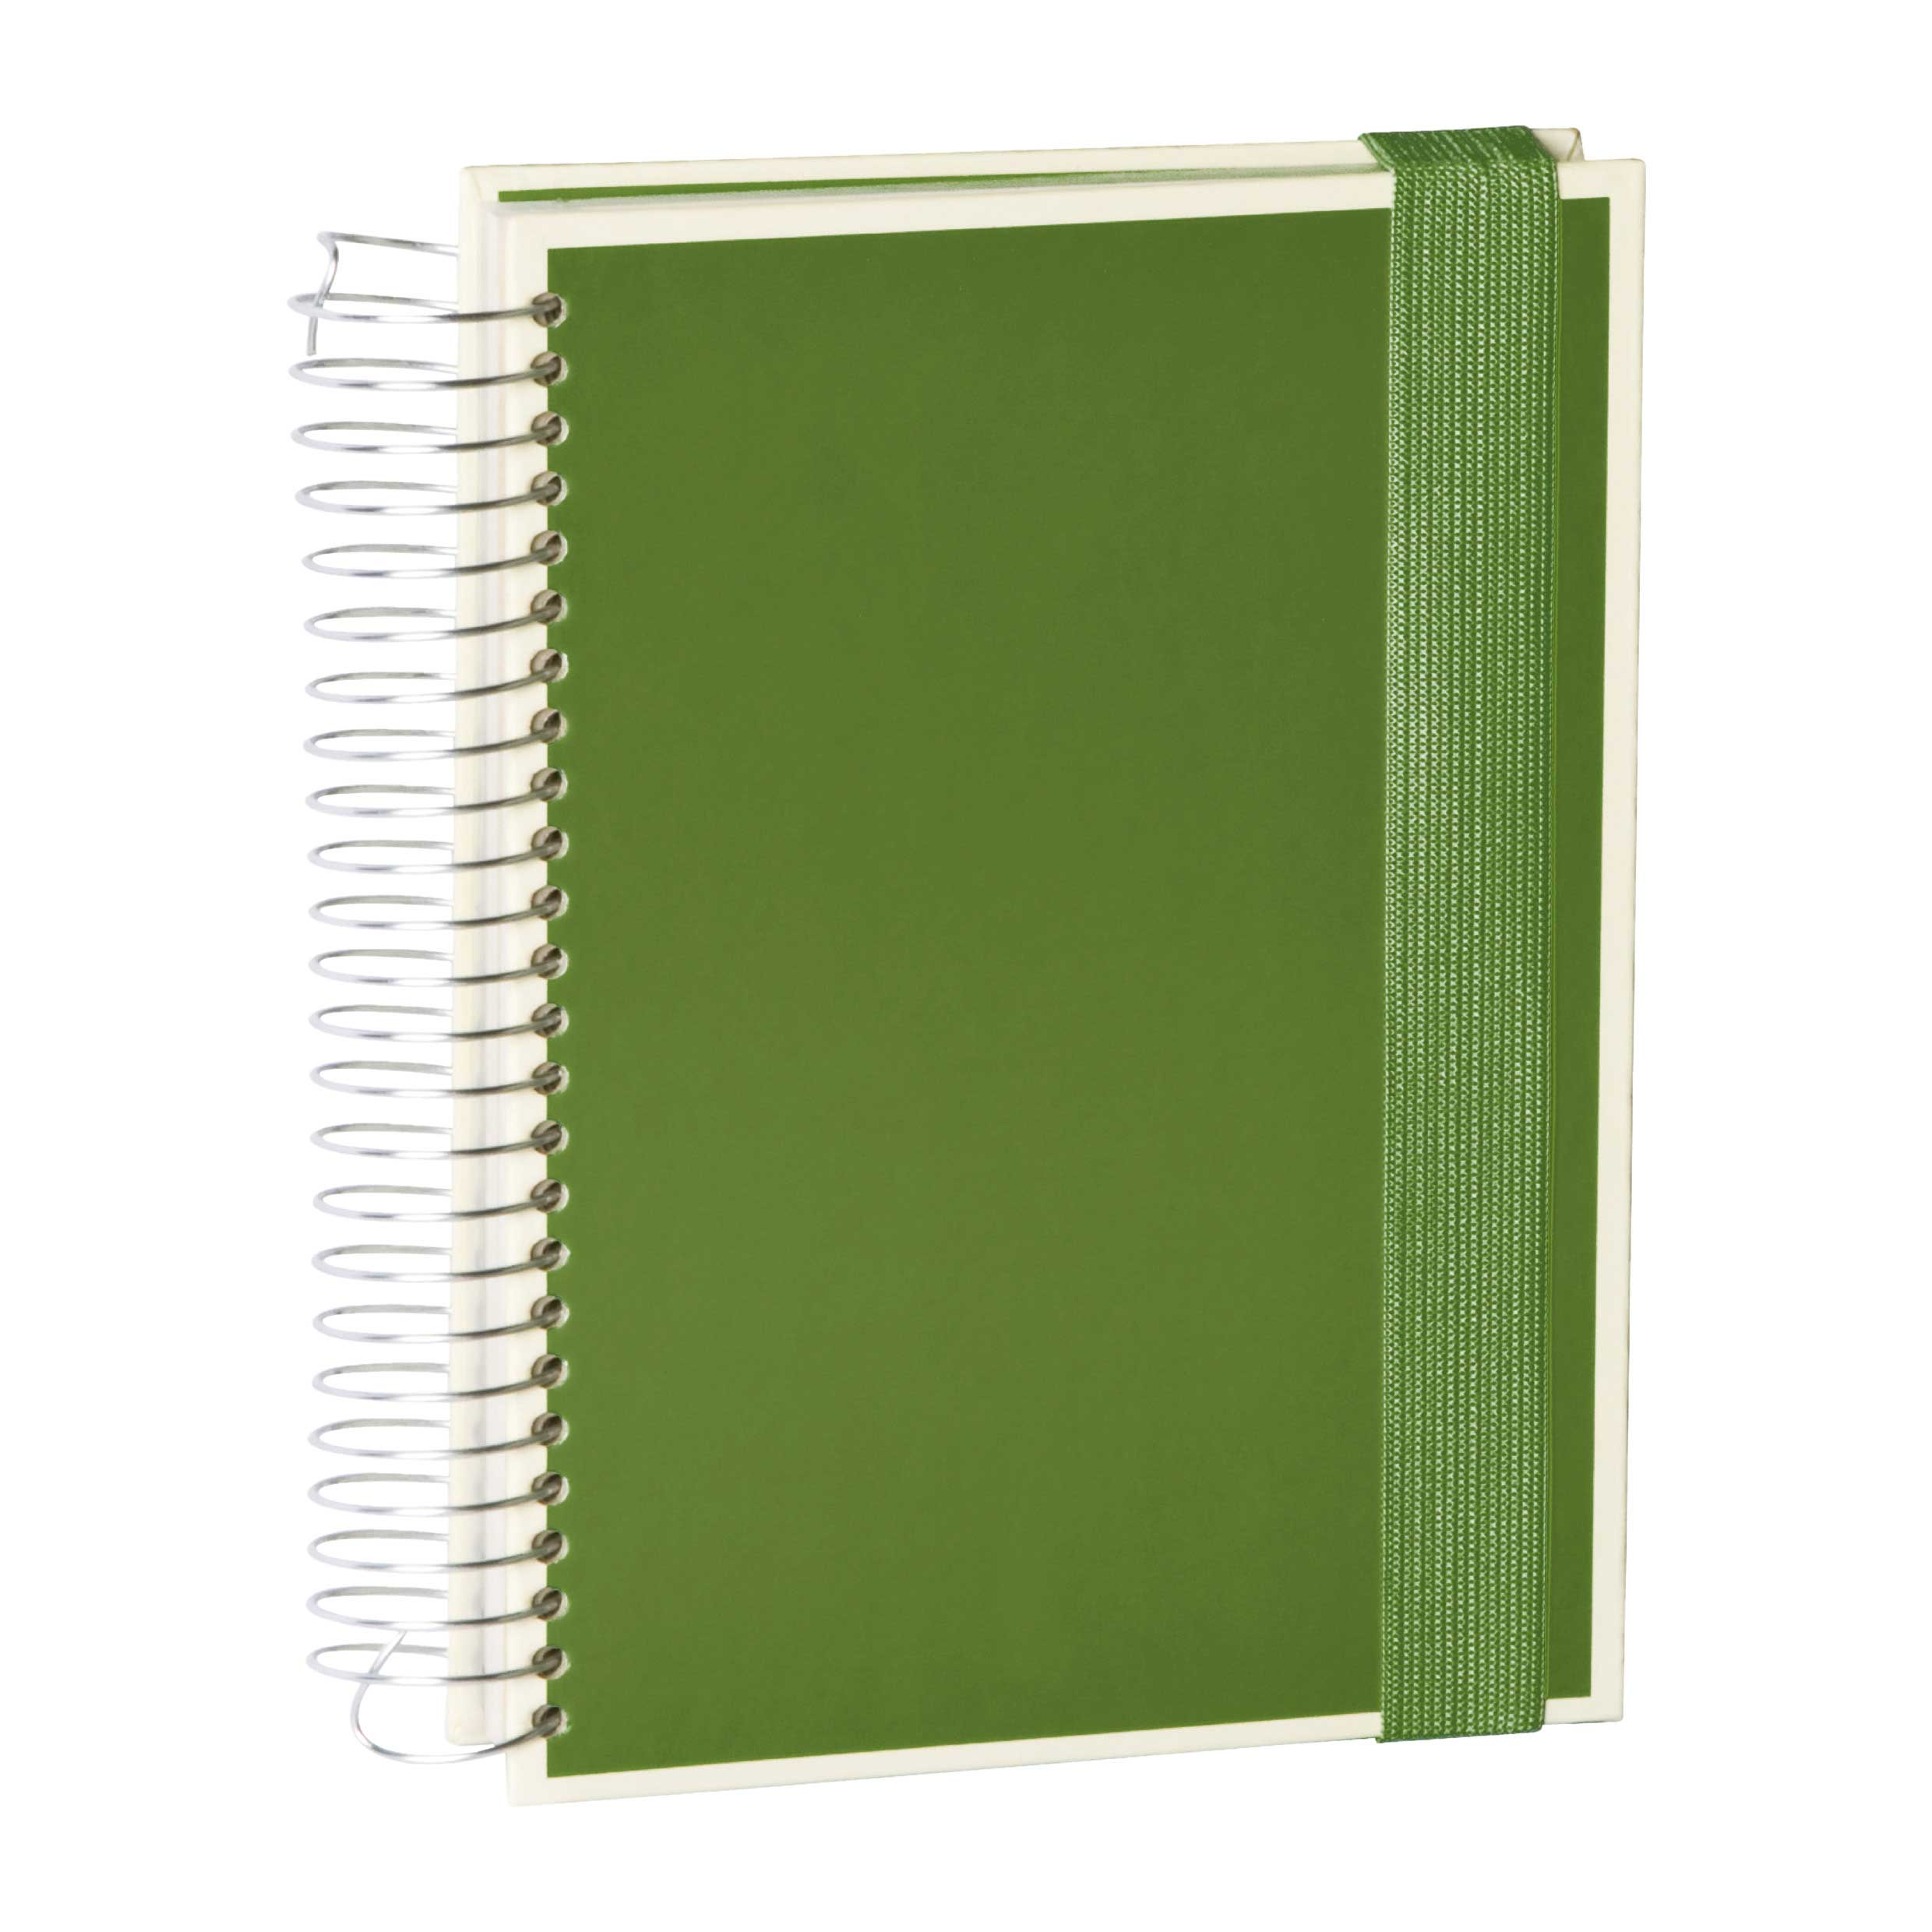 Semikolon Mucho A5 Spiral Notebook Irish Grn